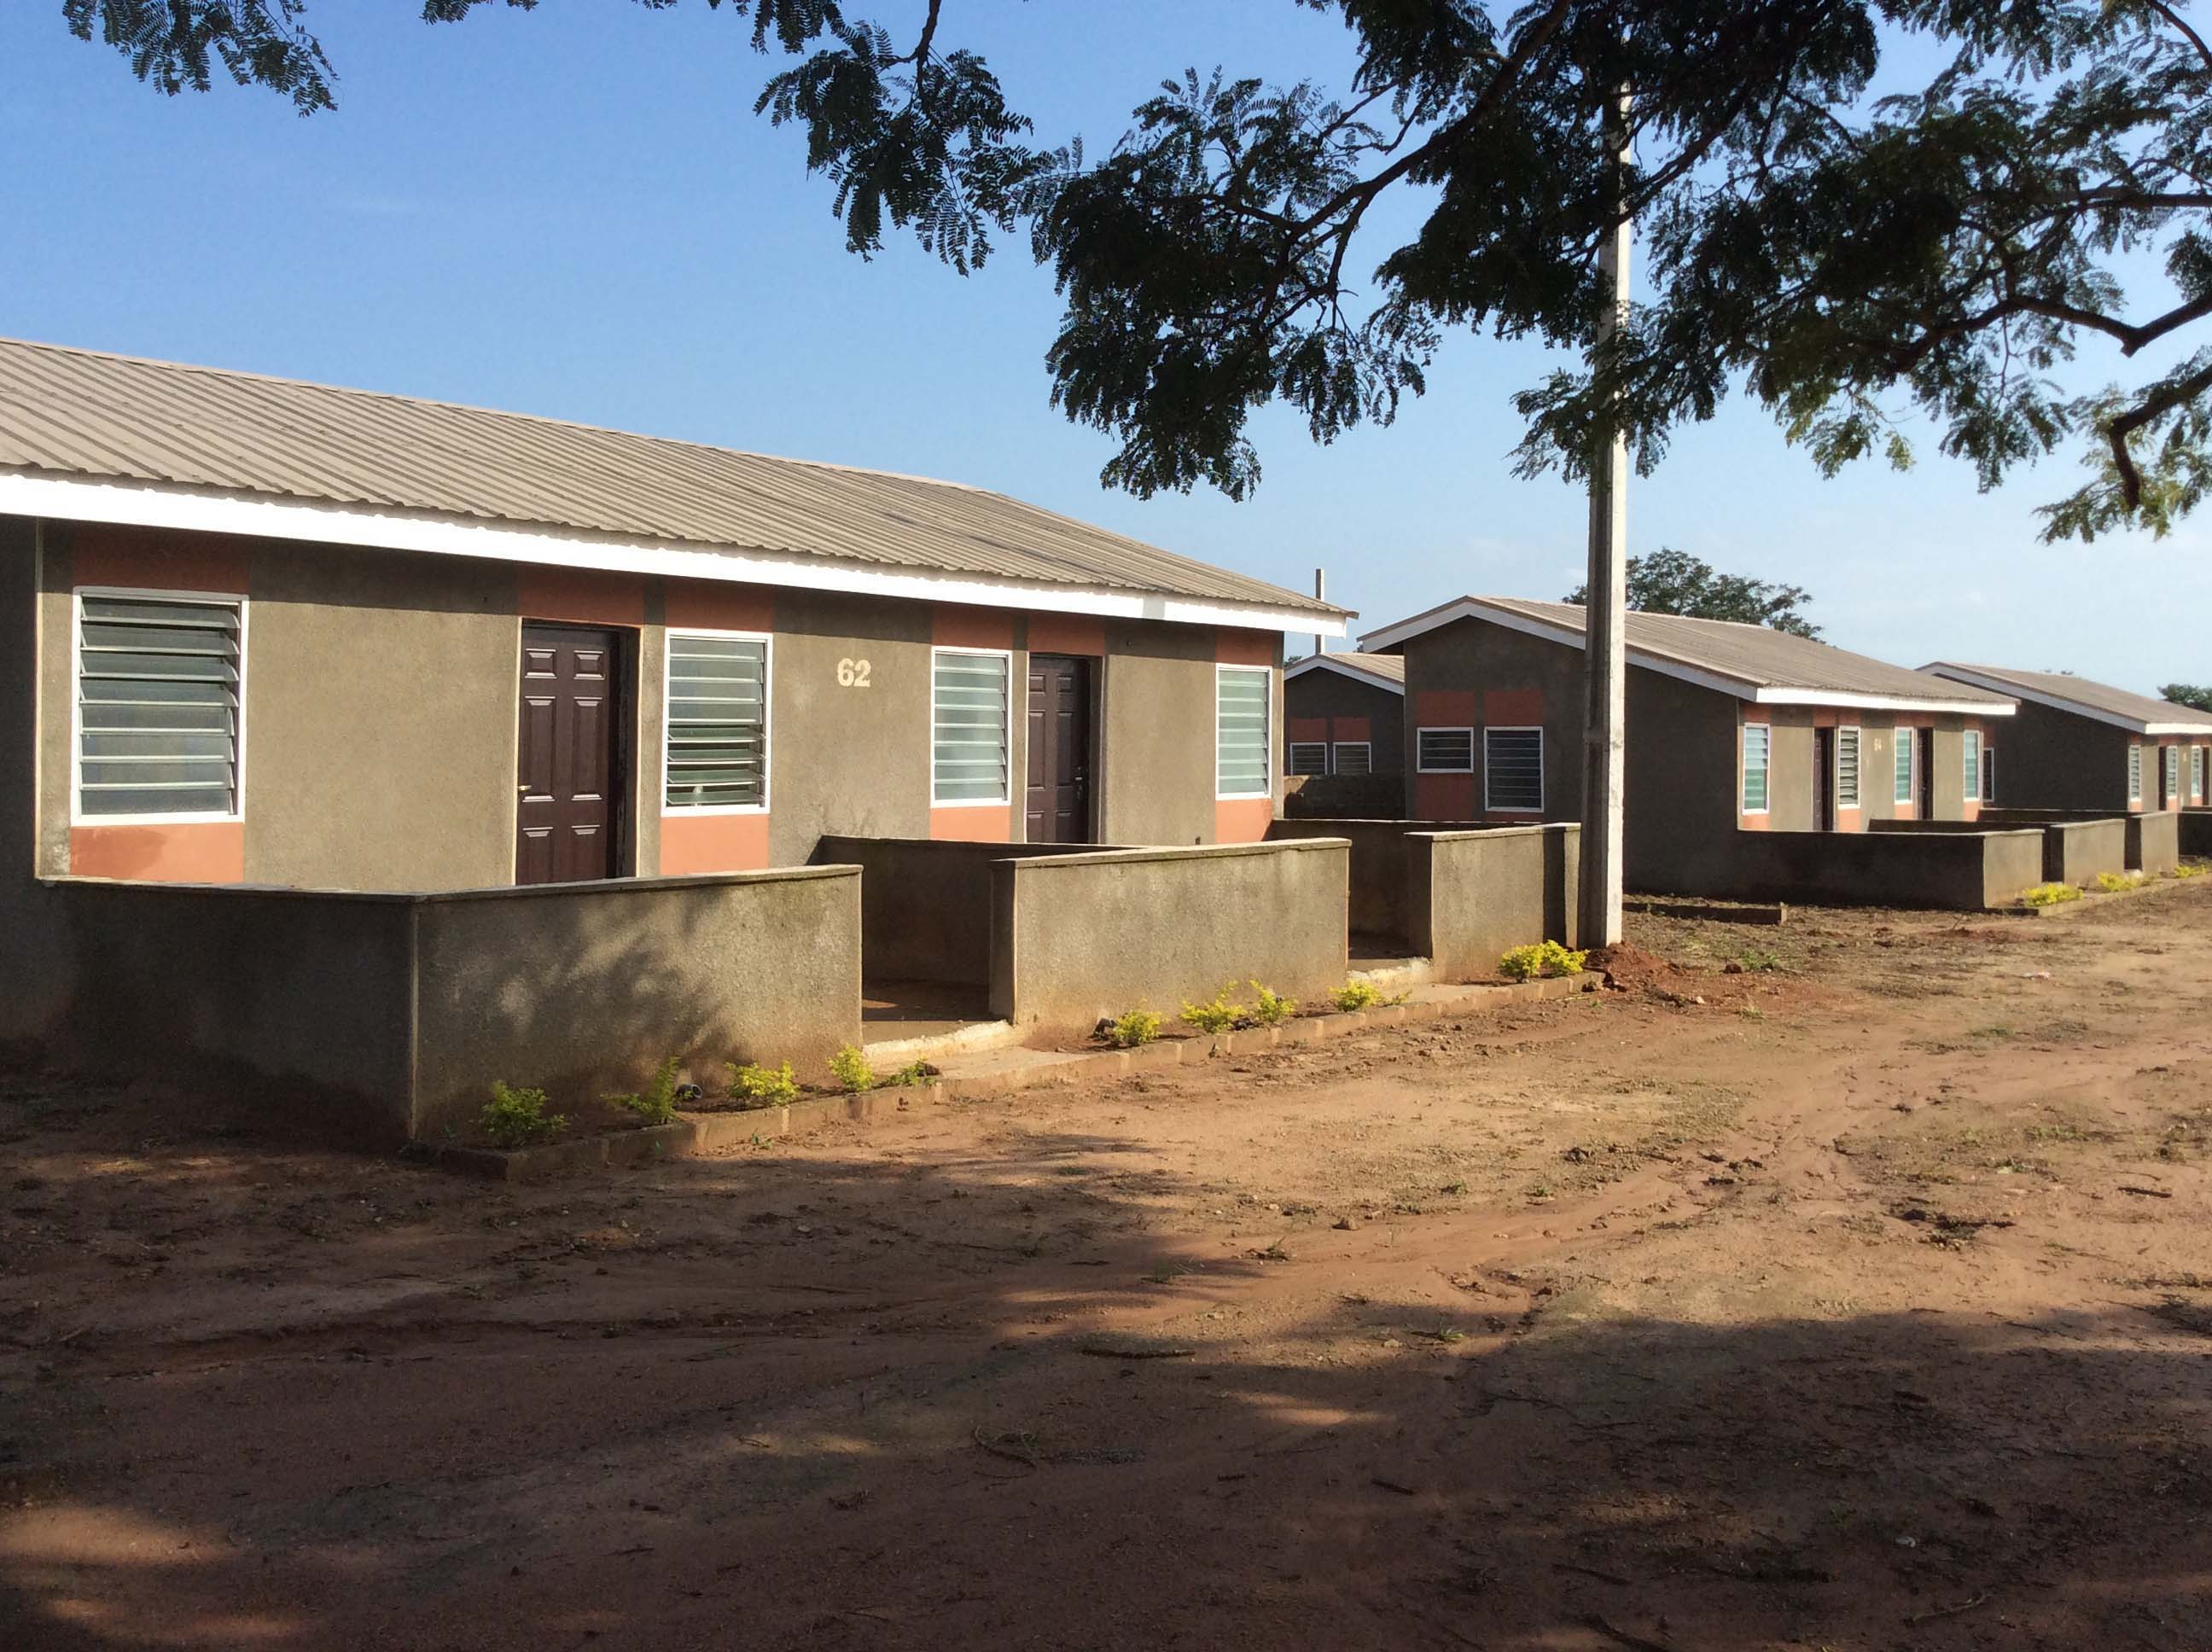 The Cheapest House In Africa In 2019 Cahf Centre For Affordable Housing Finance Africa